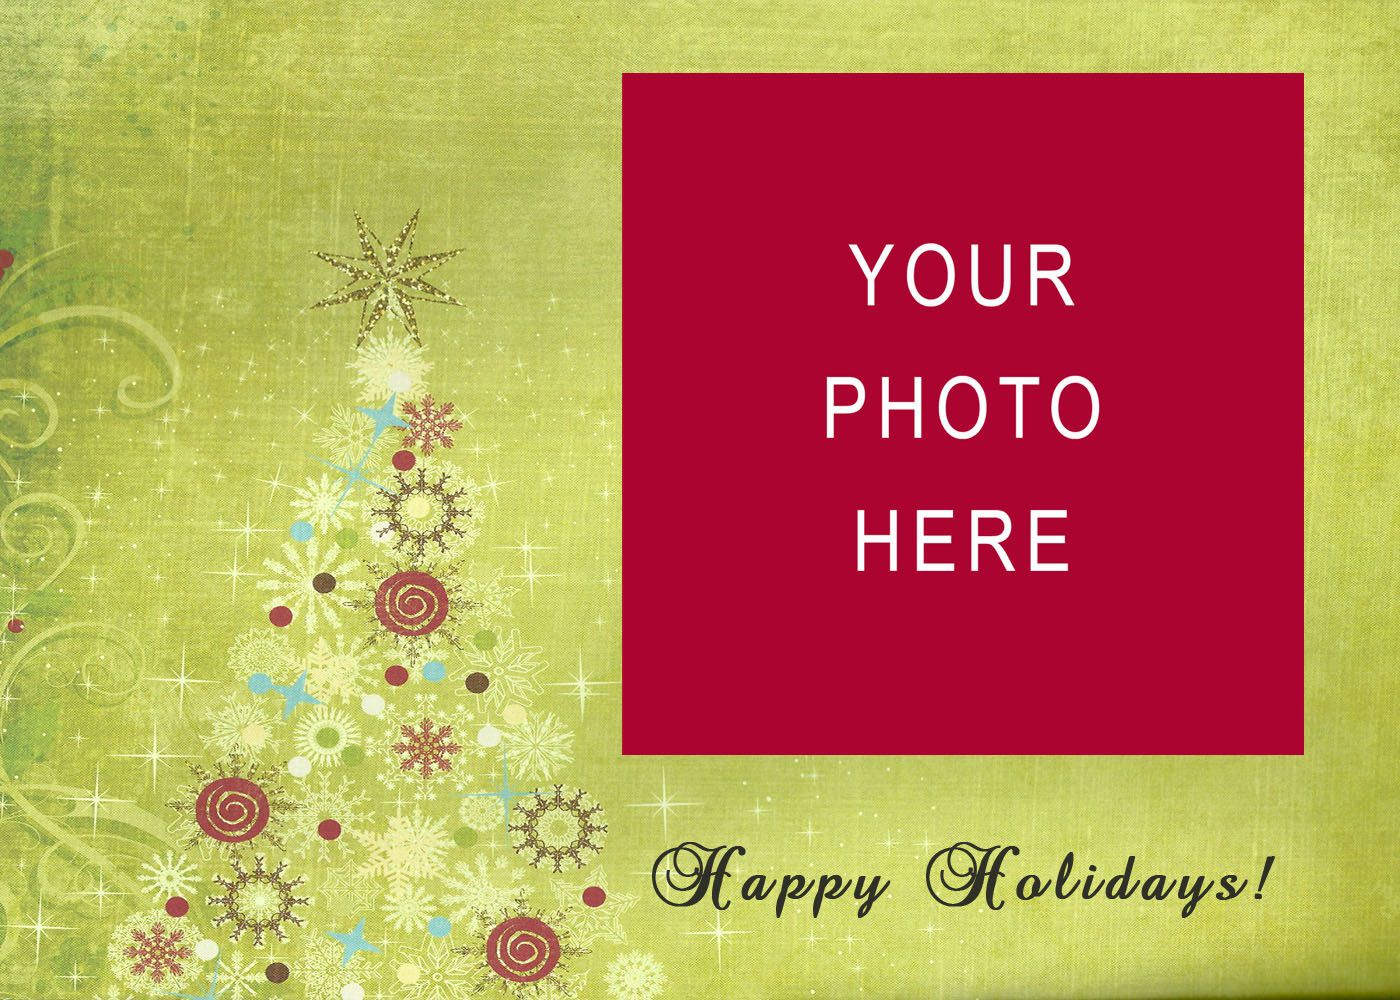 008 Staggering Free Holiday Card Template High Def  Templates Printable Photo For WordFull